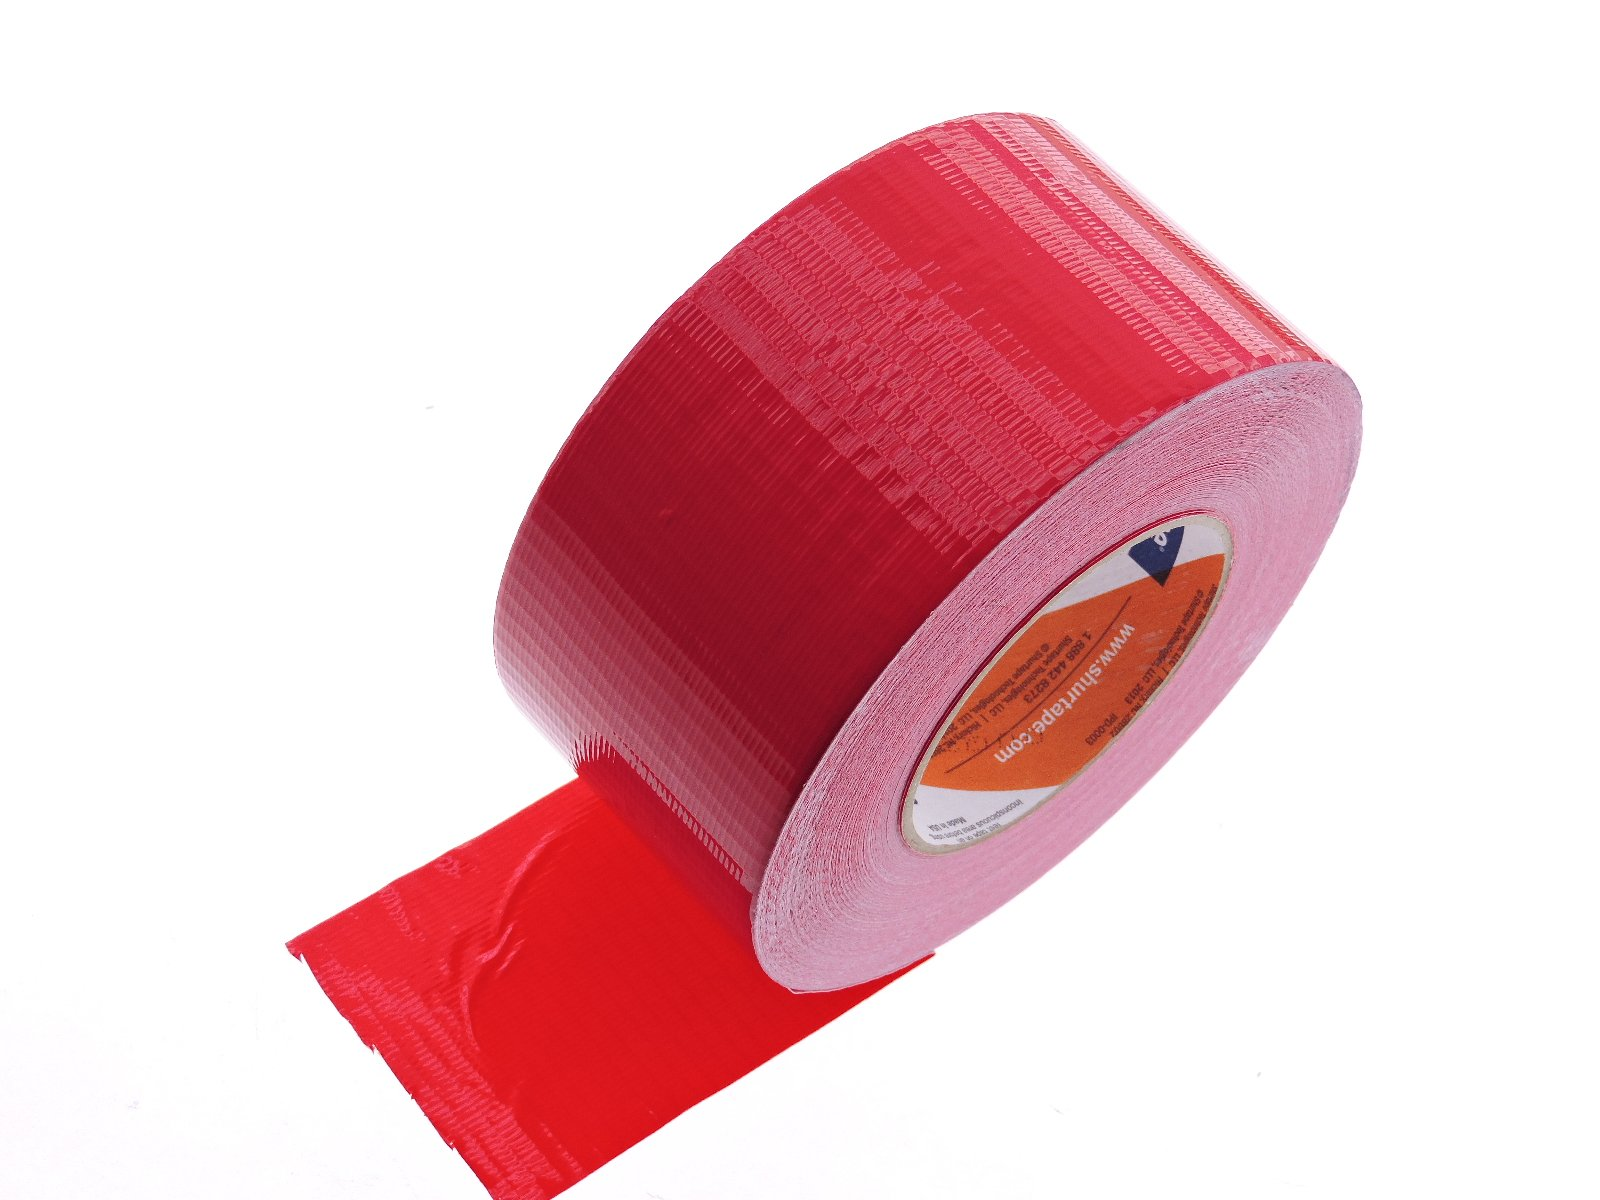 Shurtape 3'' in Red Duct Tape PC-600 Heavy 9 mil Cloth Reinforced PE Back Duct Tape Water UV Resistant Hand Tearable 60yd USA Made 50 oz inch adhesion 16% elongation 22 lb in tensile strength